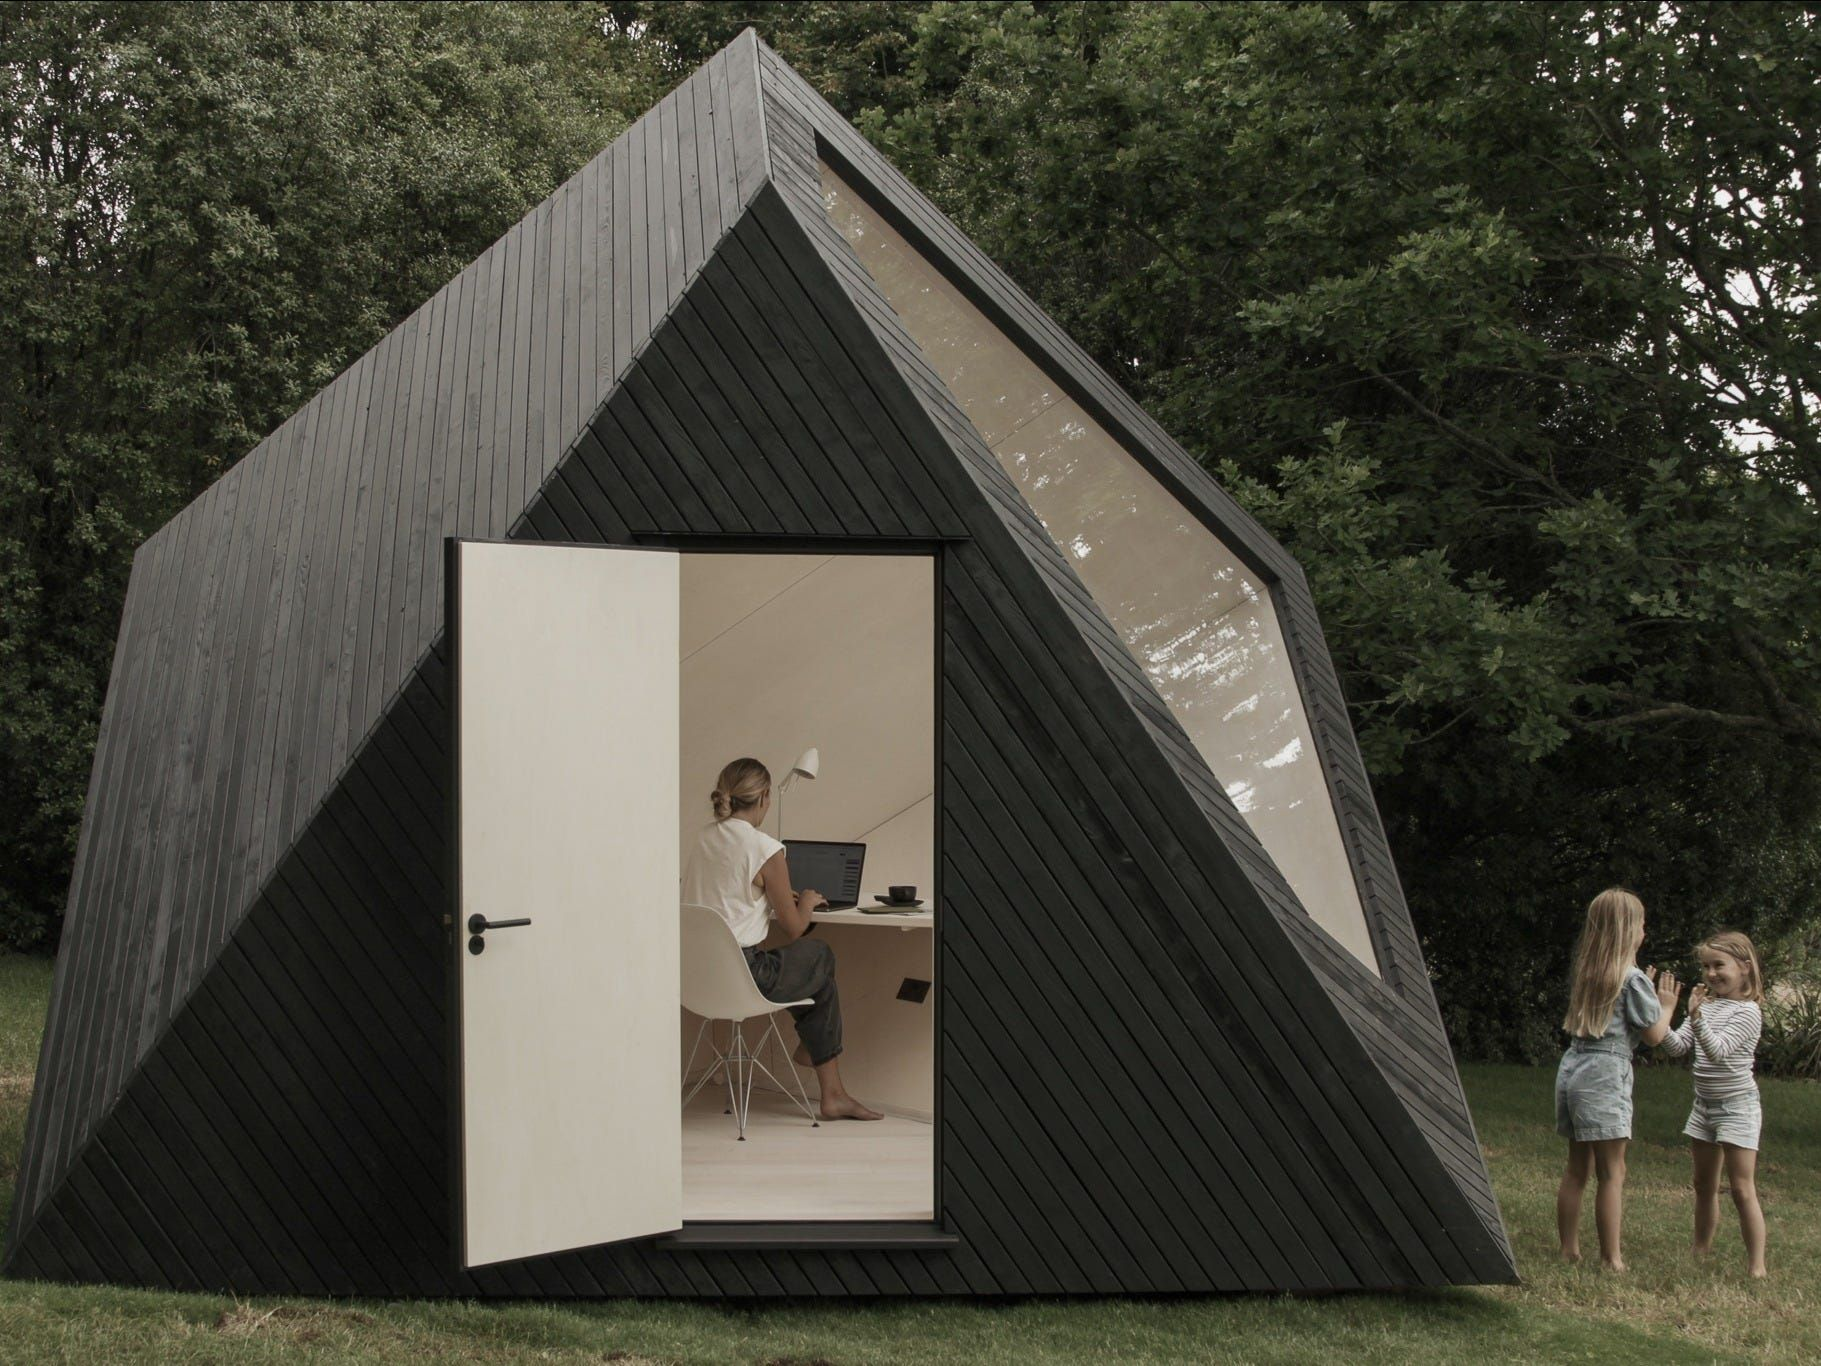 This 33,000 tiny cabin that looks like a sculpture and